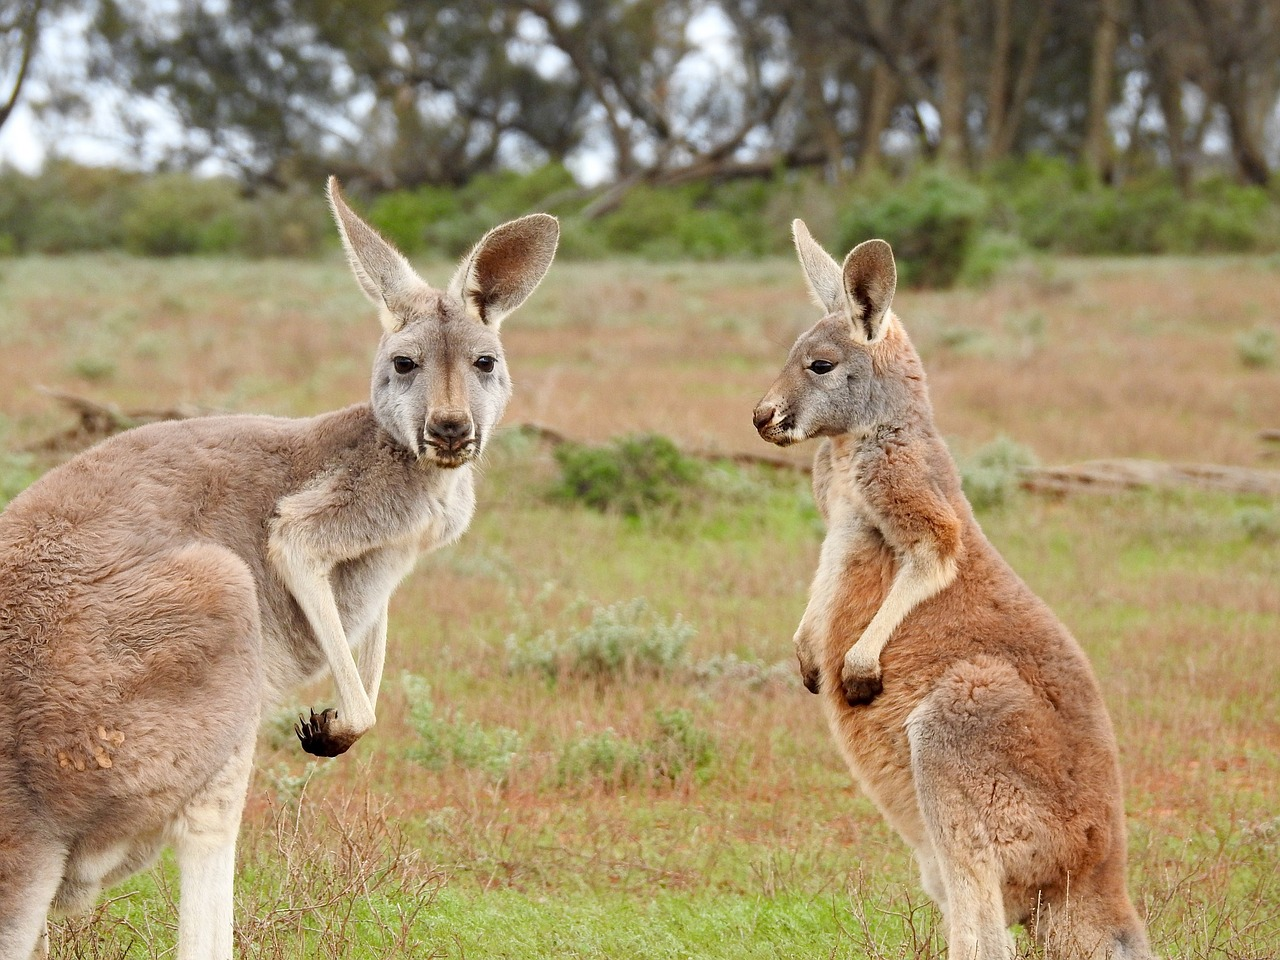 What do they eat kangaroos